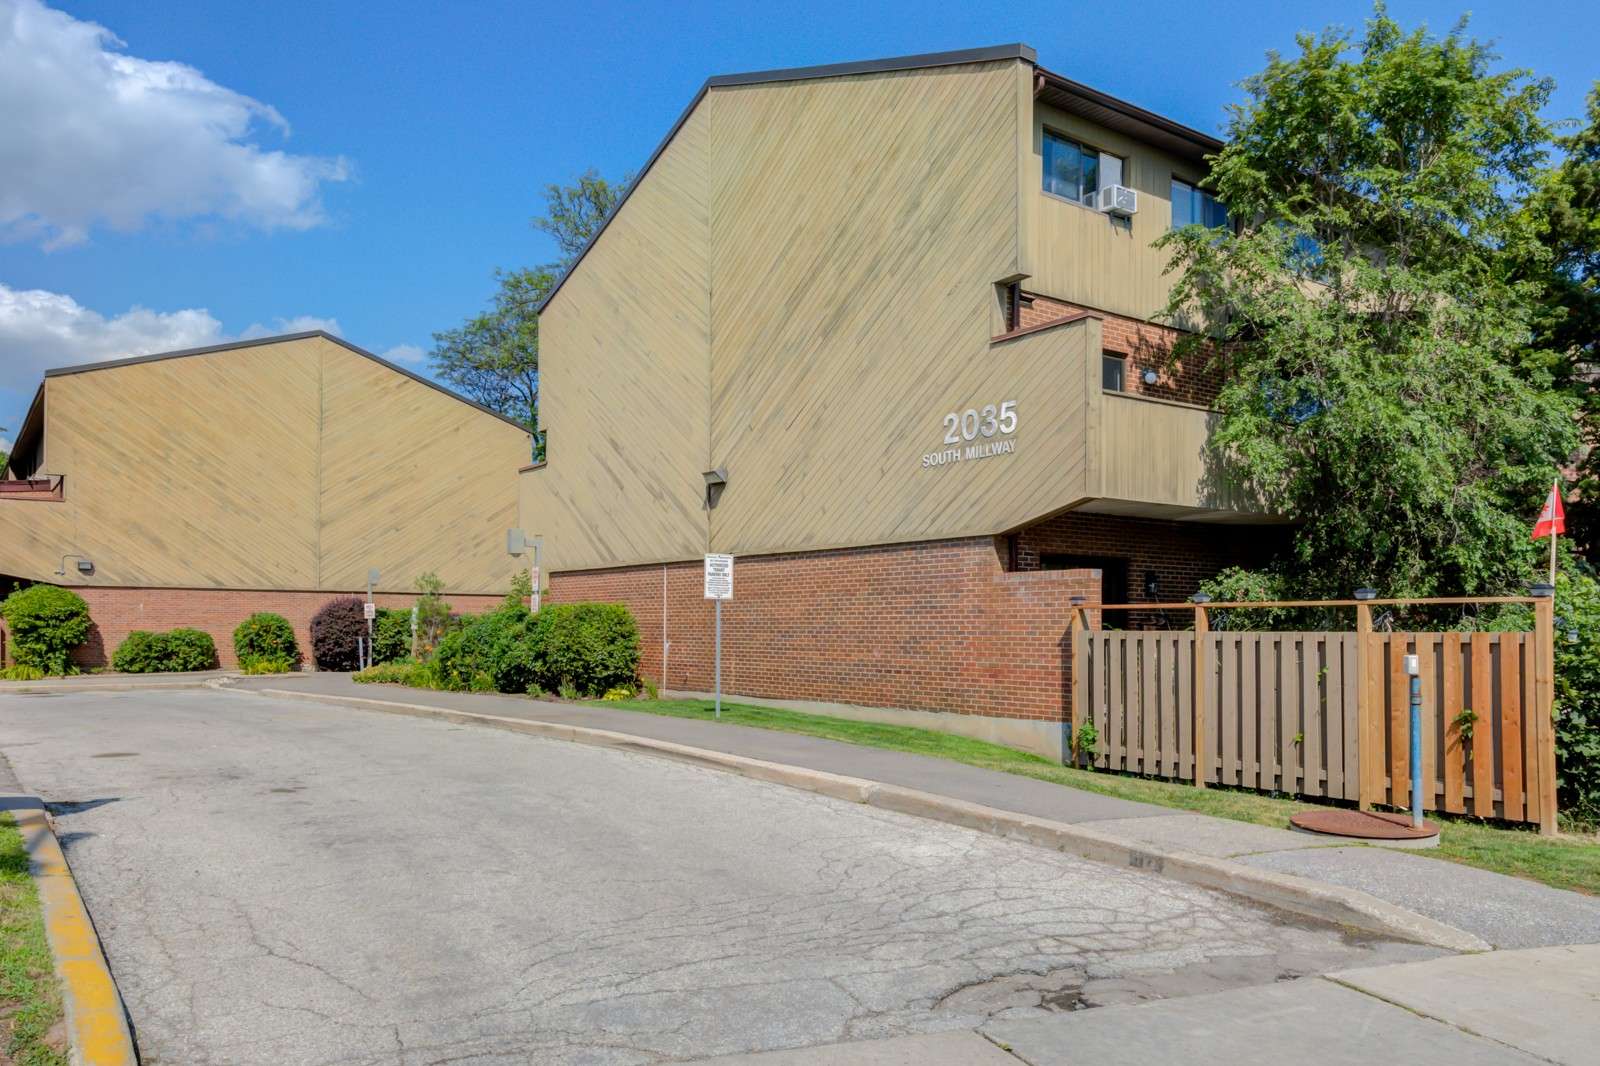 2035 South Millway Townhouses at 2035 South Millway, Mississauga 1